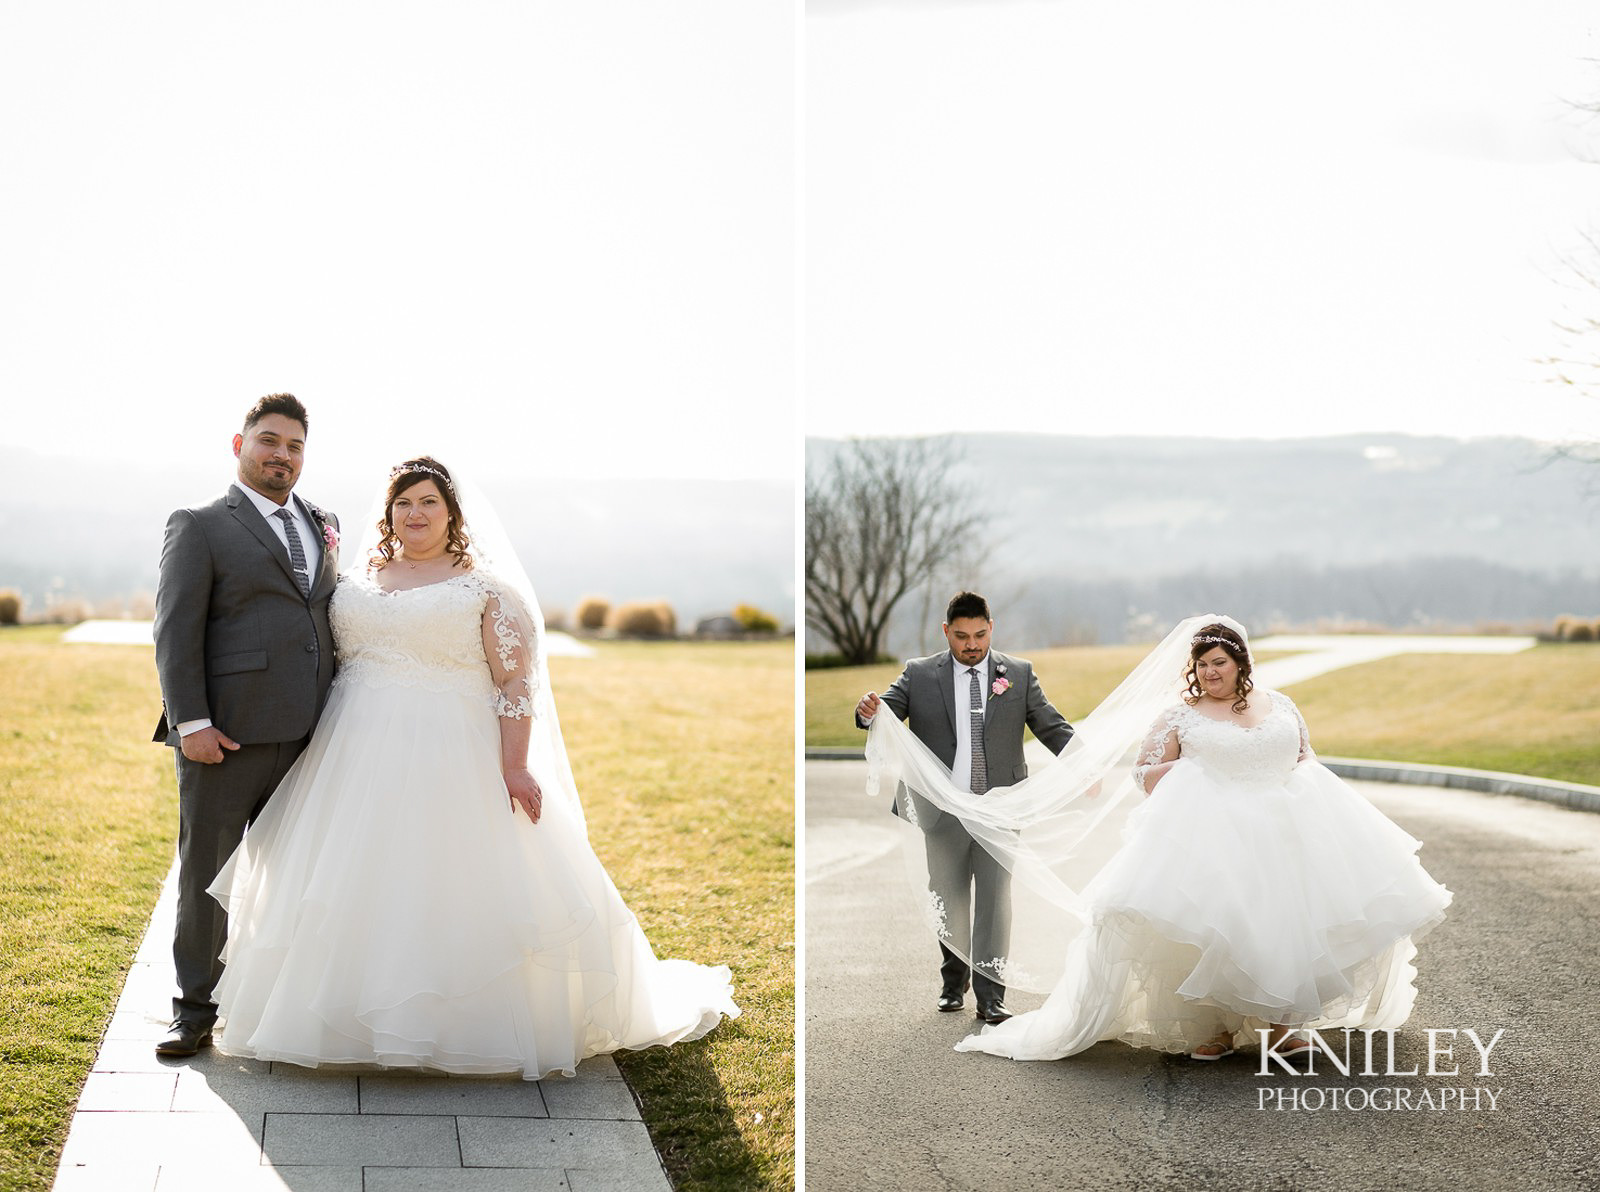 065 - Woodcliff Hotel - Rochester NY wedding photo - Kniley Photography.jpg